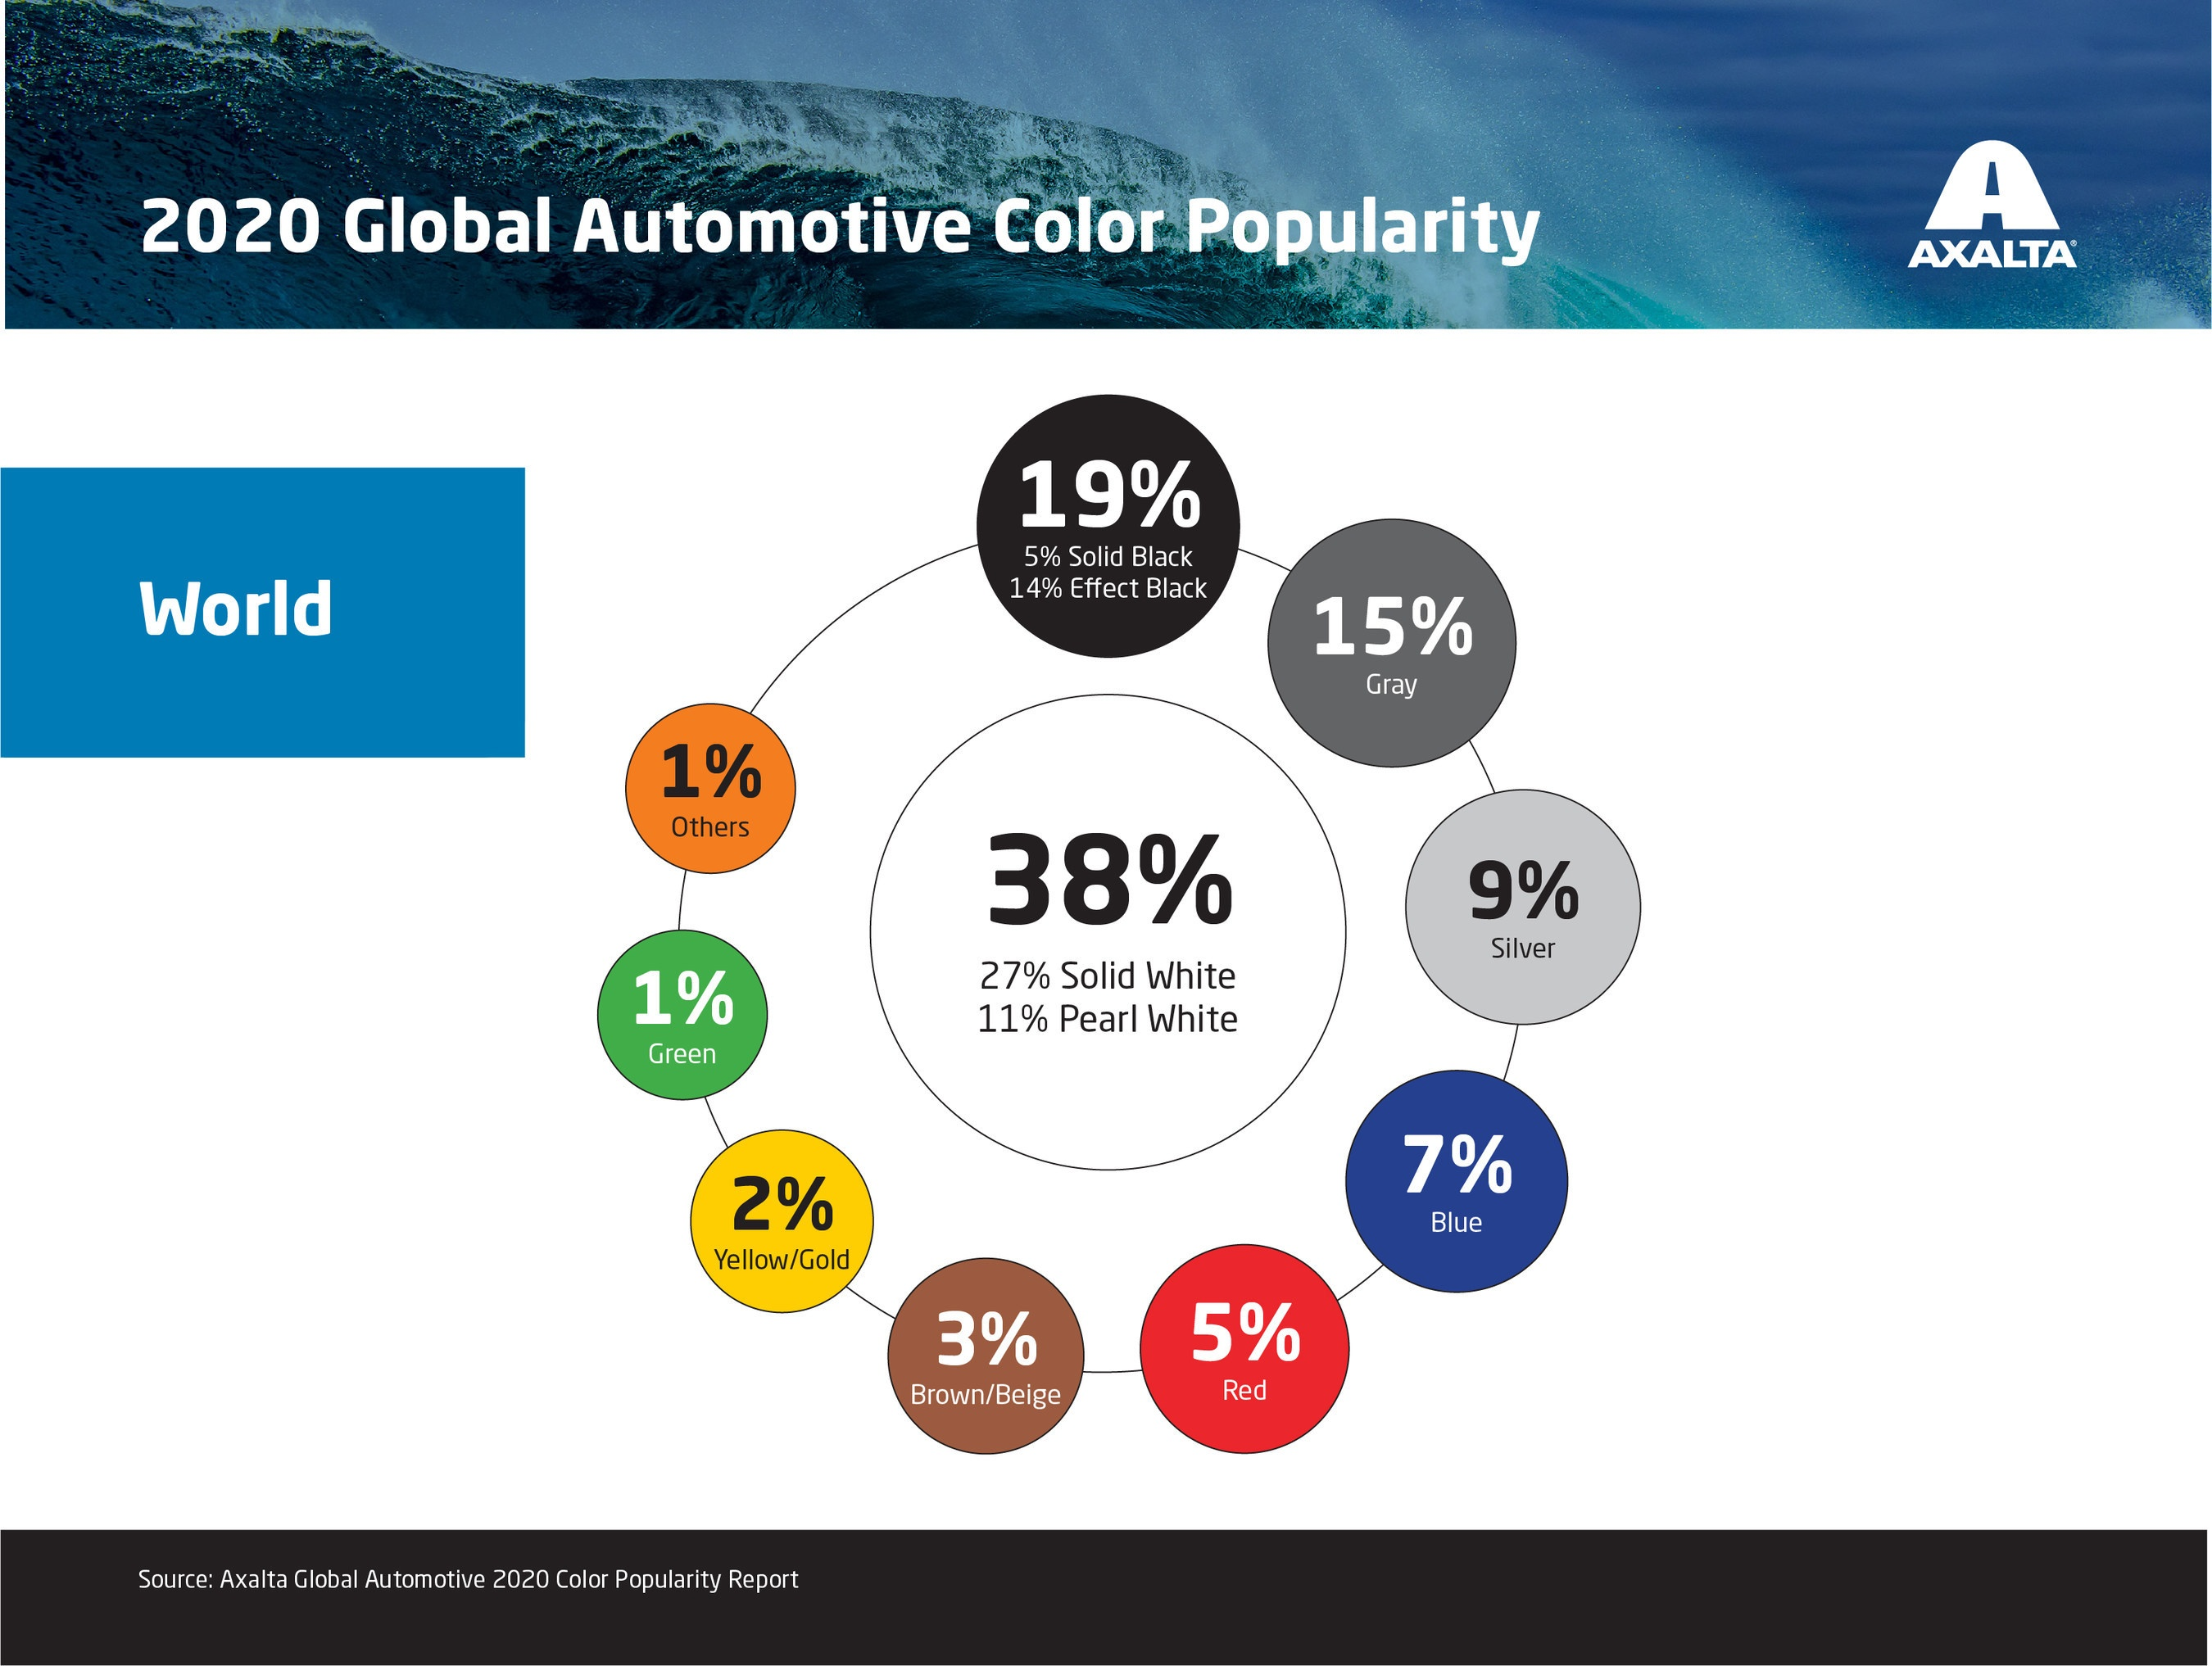 Axalta 2020 Global Automotive Color Popularity